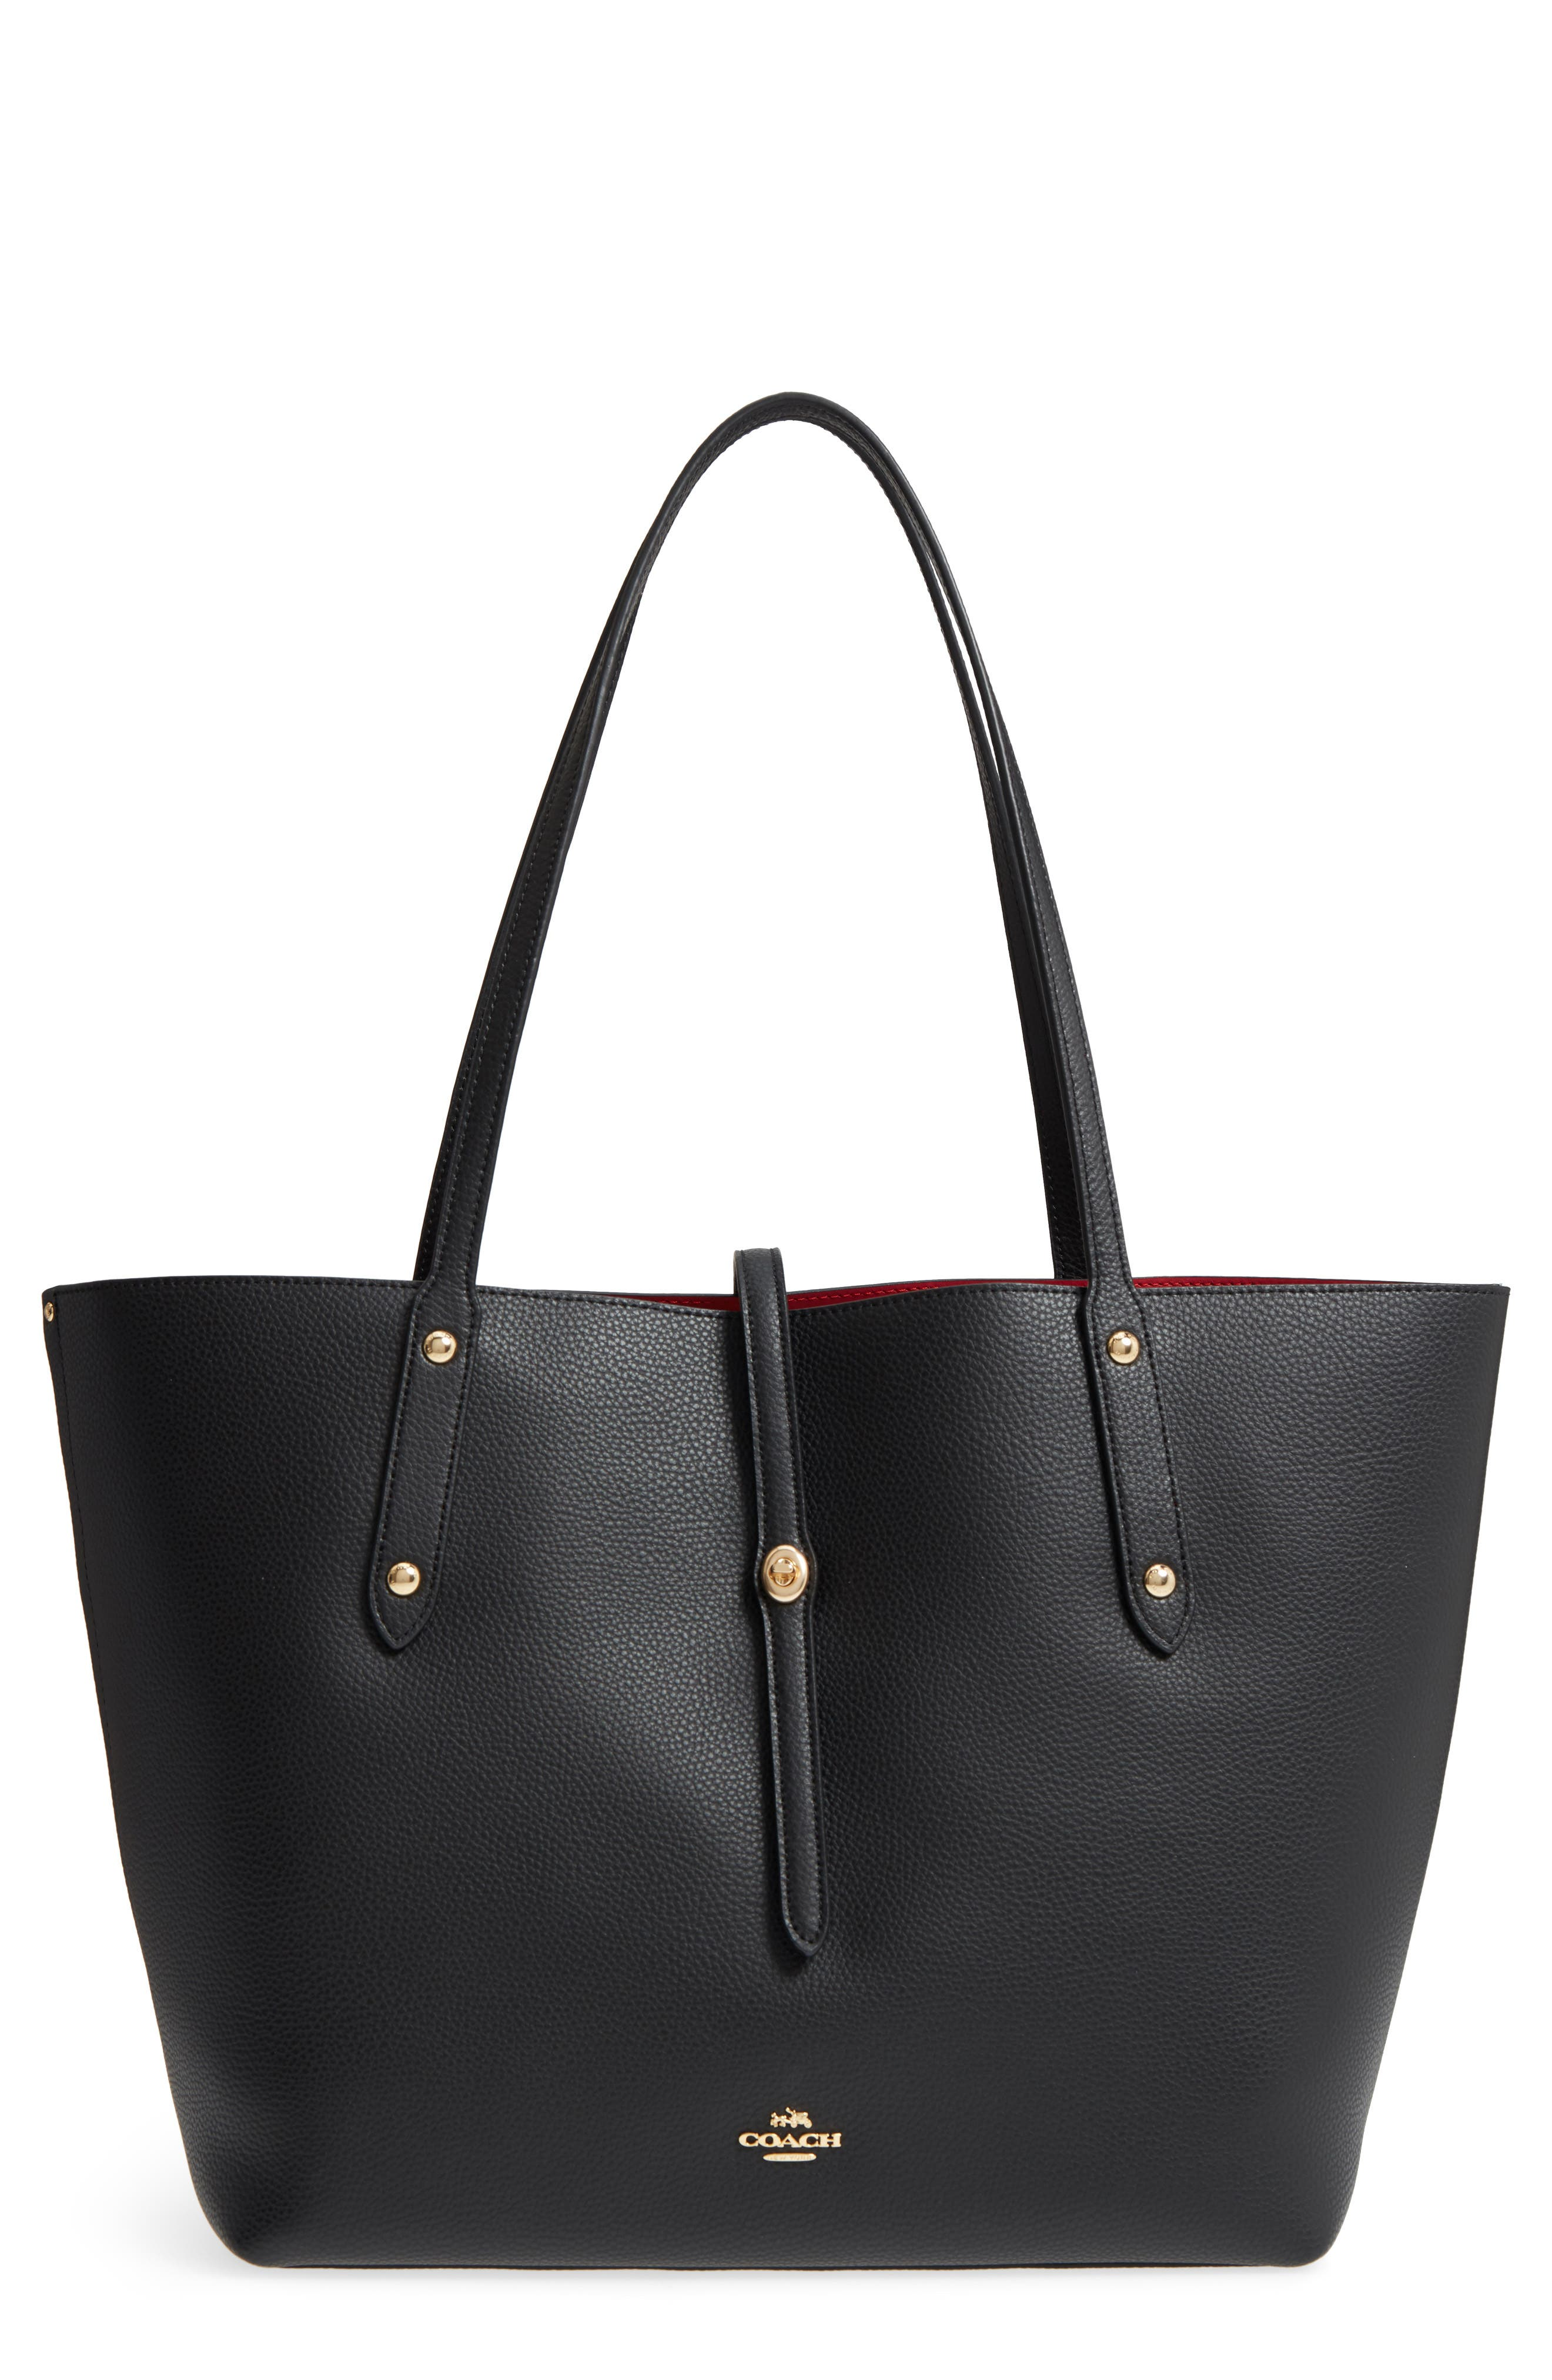 Market Pebbled Leather Tote,                             Main thumbnail 1, color,                             Black / True Red